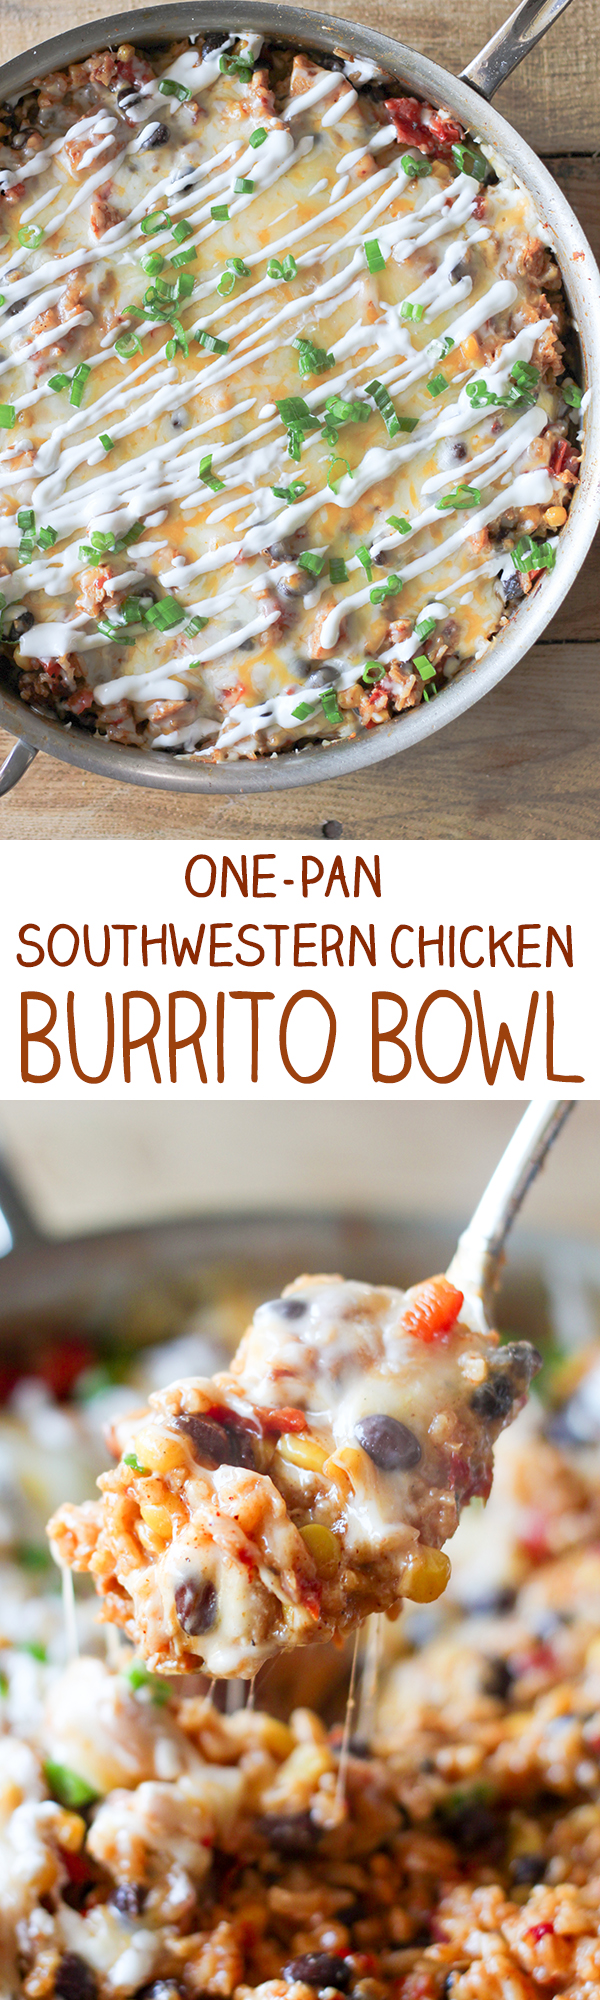 One-Pan Southwestern Chicken Burrito Bowl